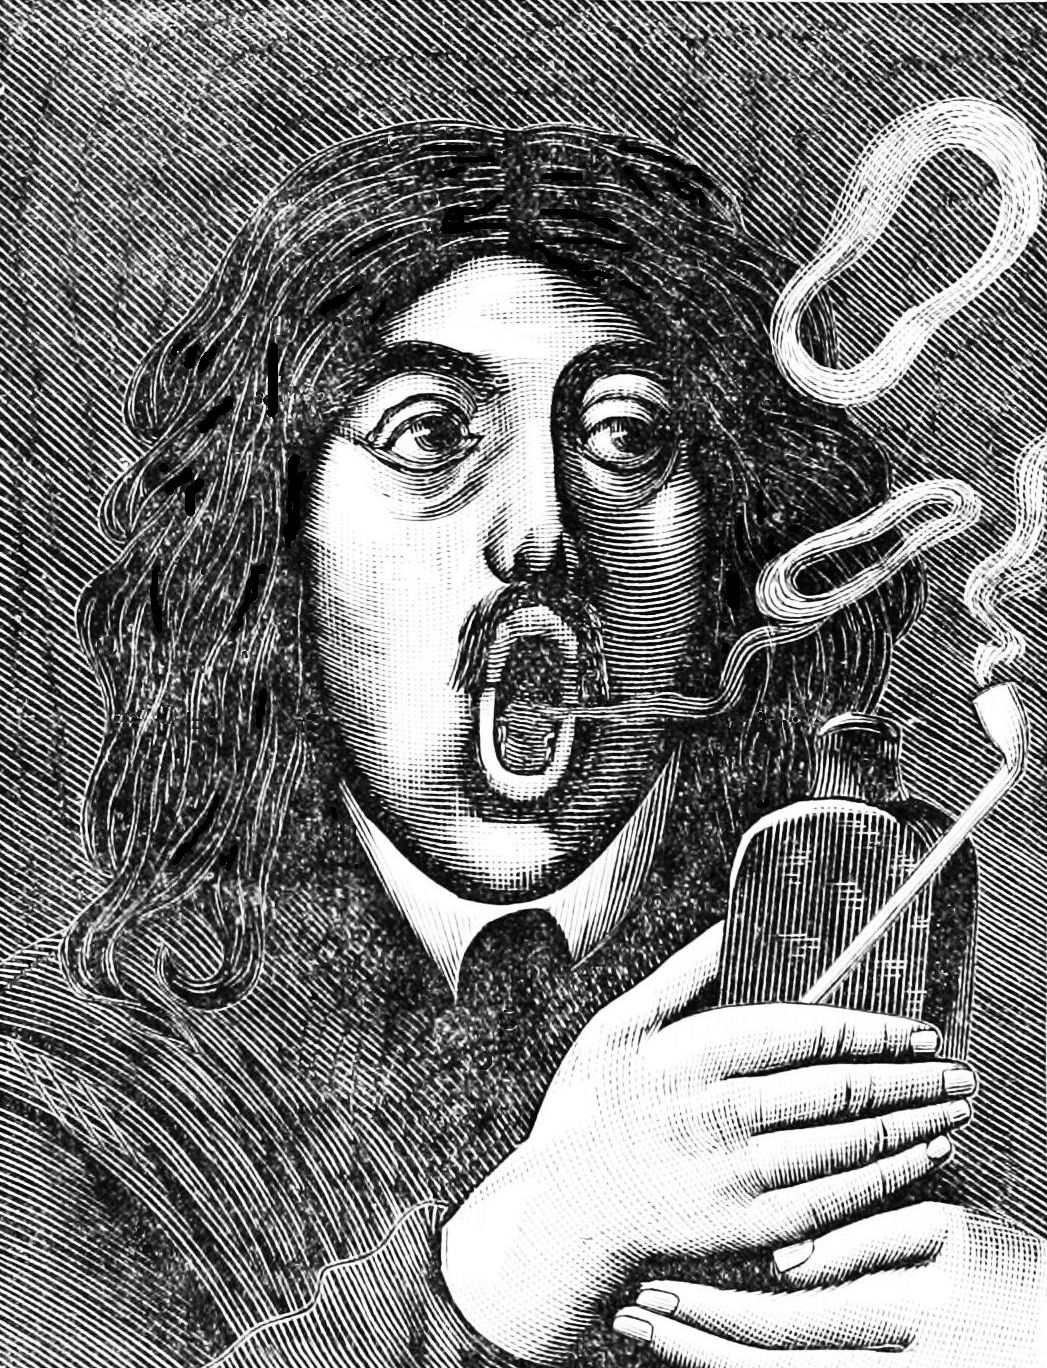 the history of tobacco and how it Smoking: smoking, the act of inhaling and exhaling the fumes of burning plant material a variety of plant materials are smoked, including marijuana and hashish, but the act is most commonly associated with tobacco as smoked in a cigarette, cigar, or pipe learn more about the history and effects of smoking in this article.